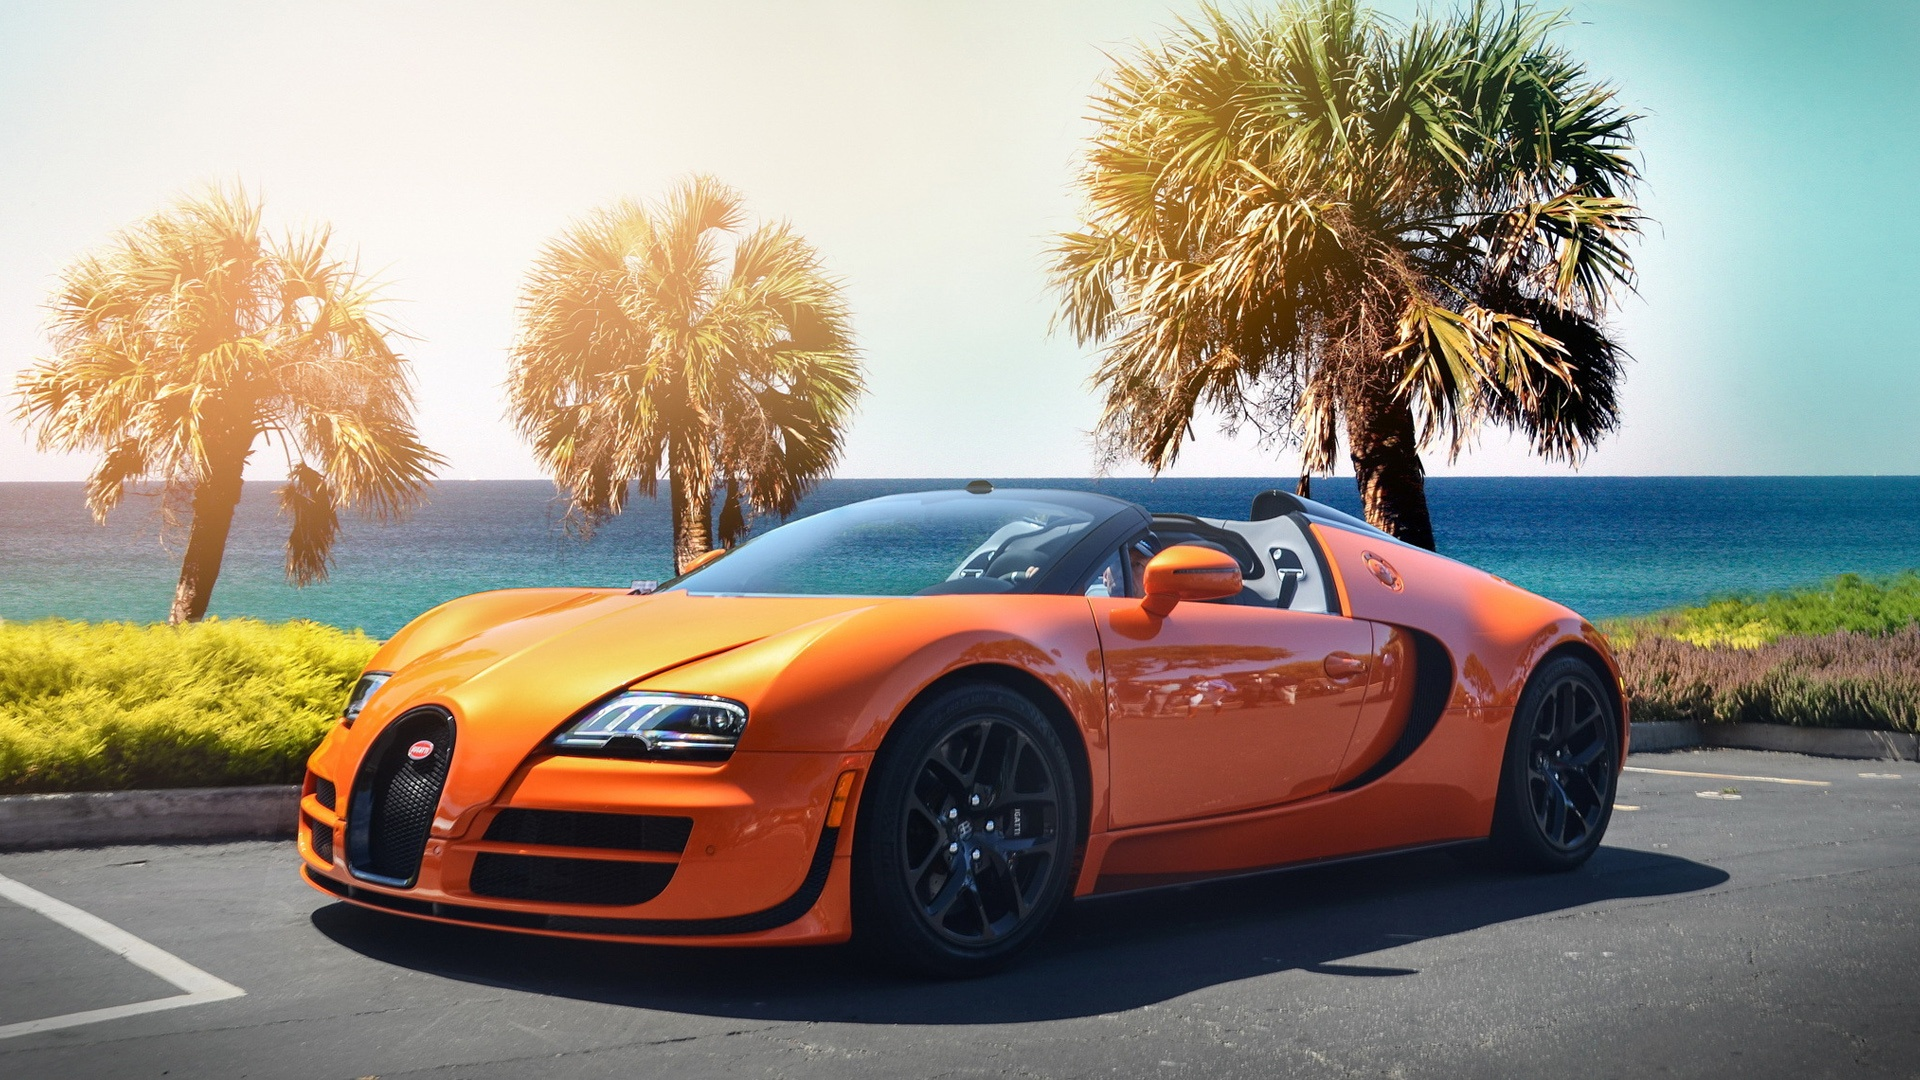 50 cool bugatti wallpapers backgrounds for free download - Bugatti veyron photos wallpapers ...